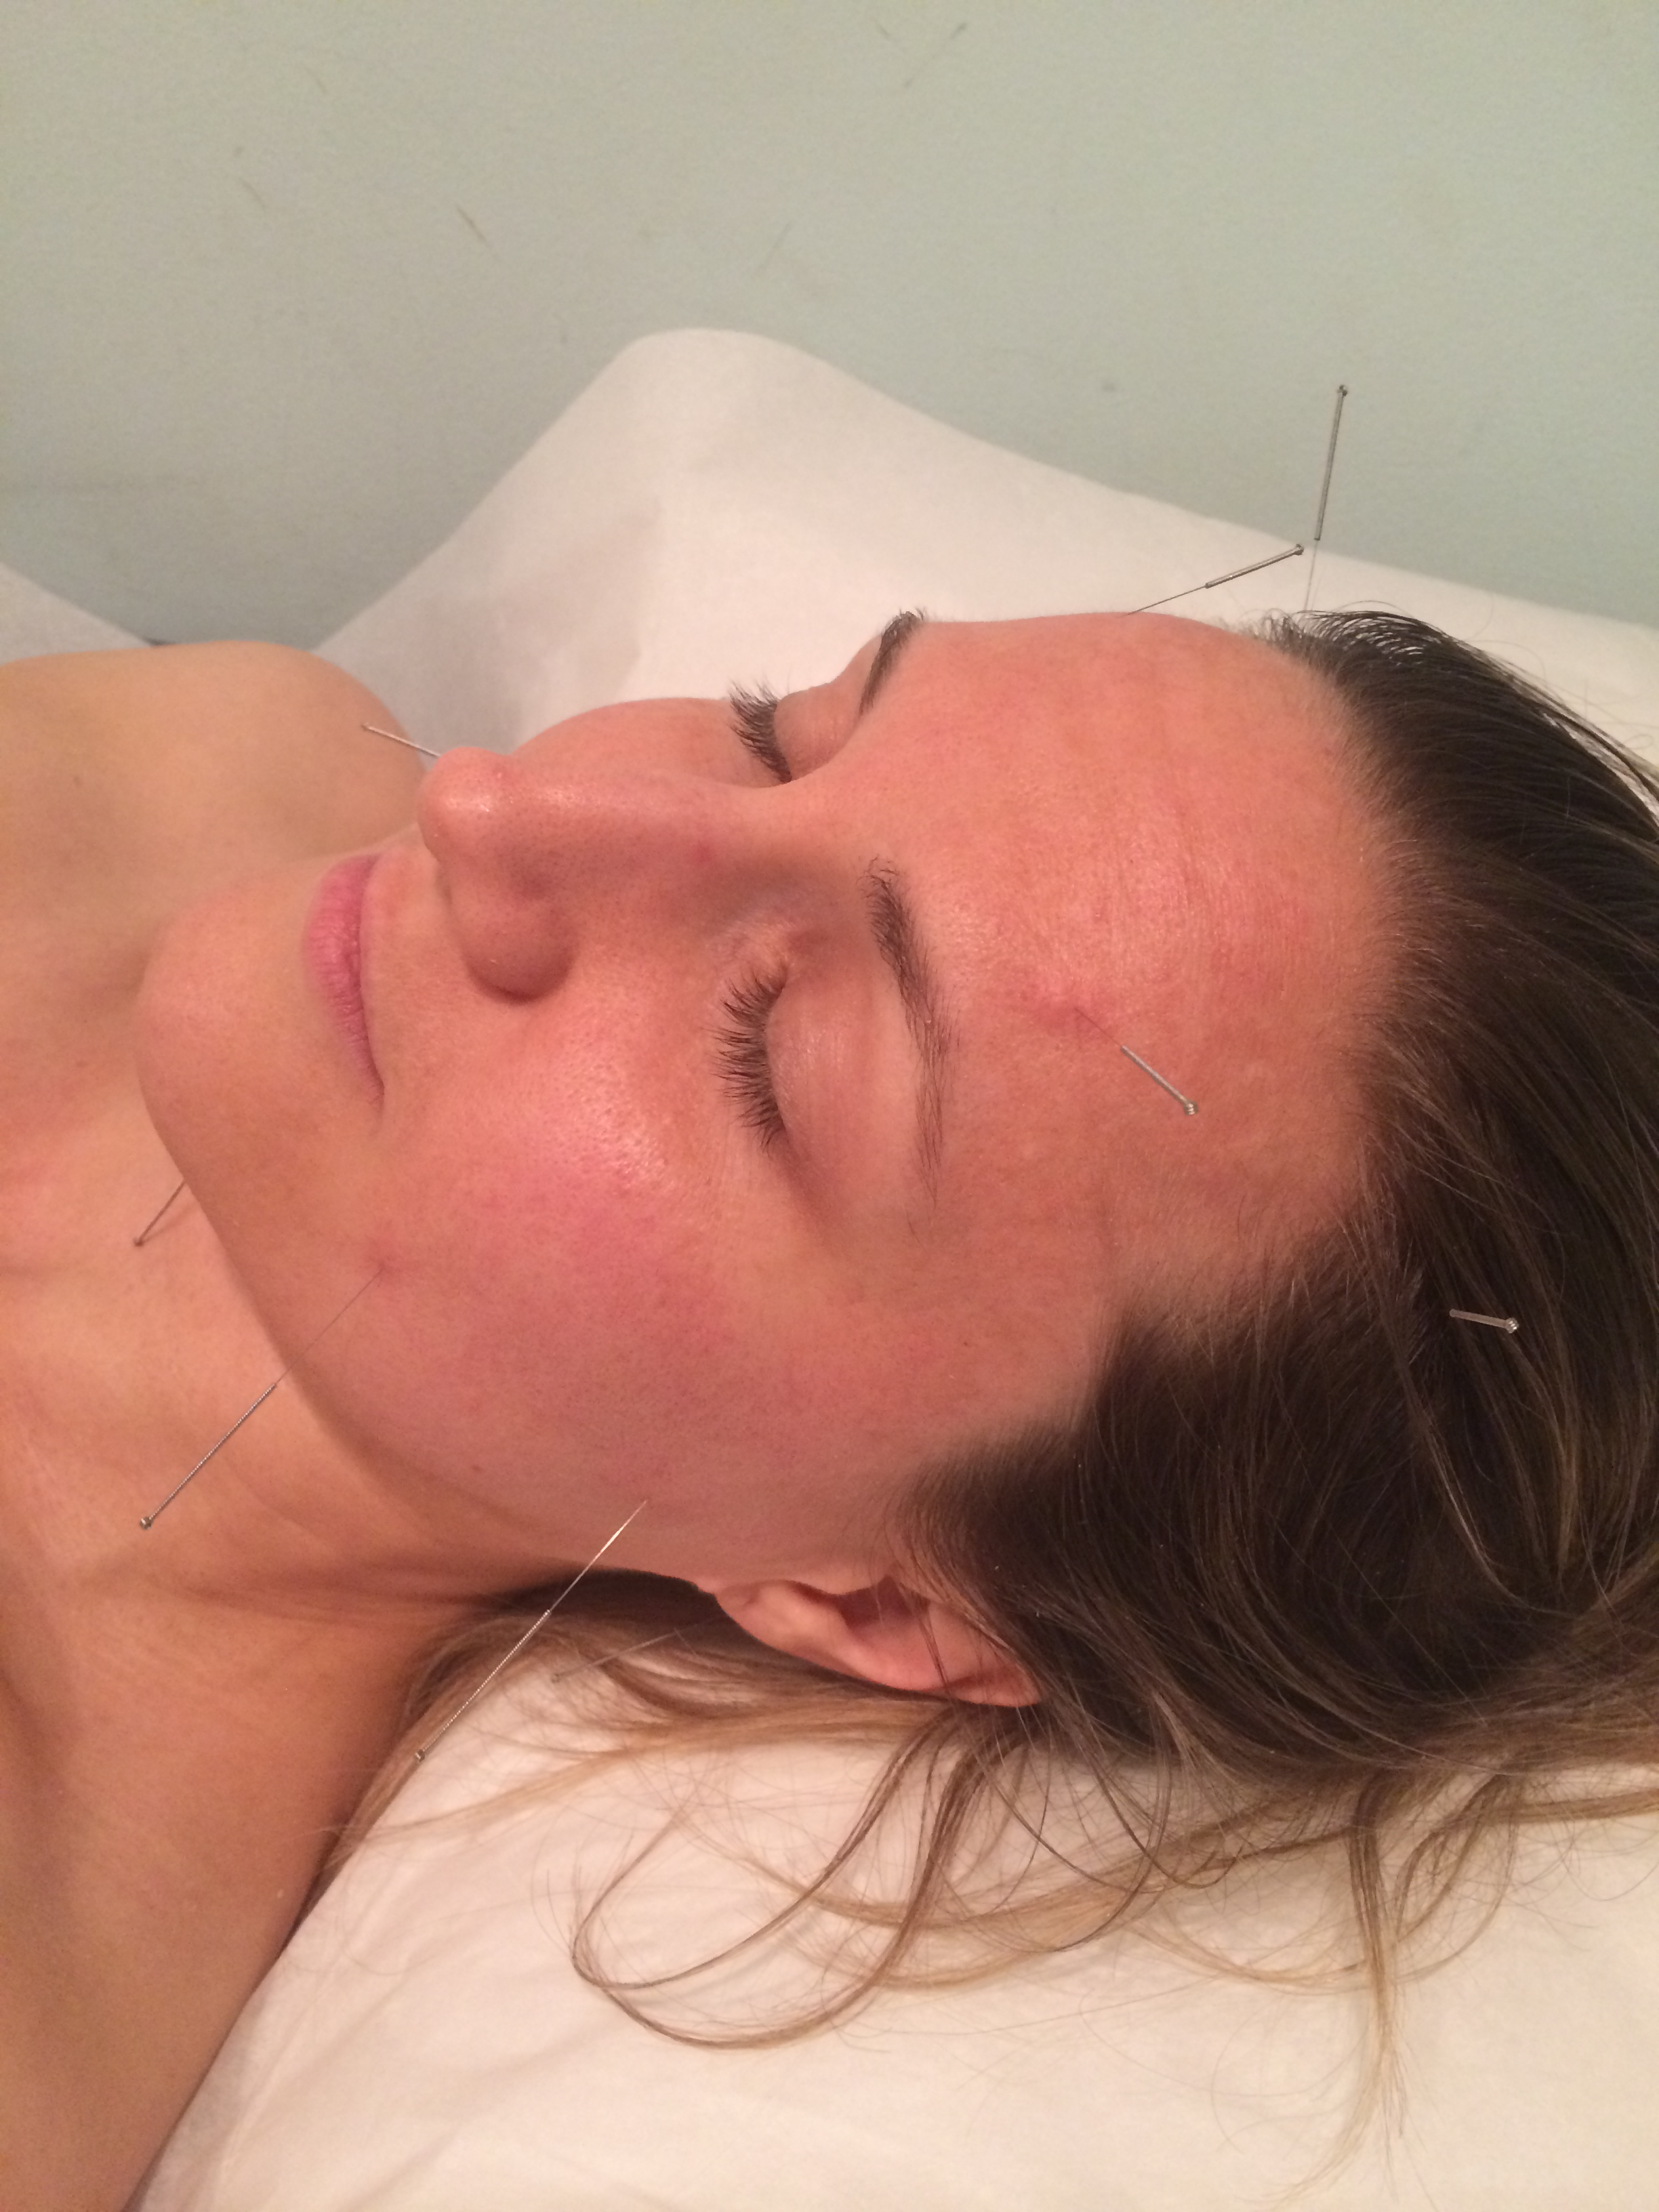 Facial accupuncture photos